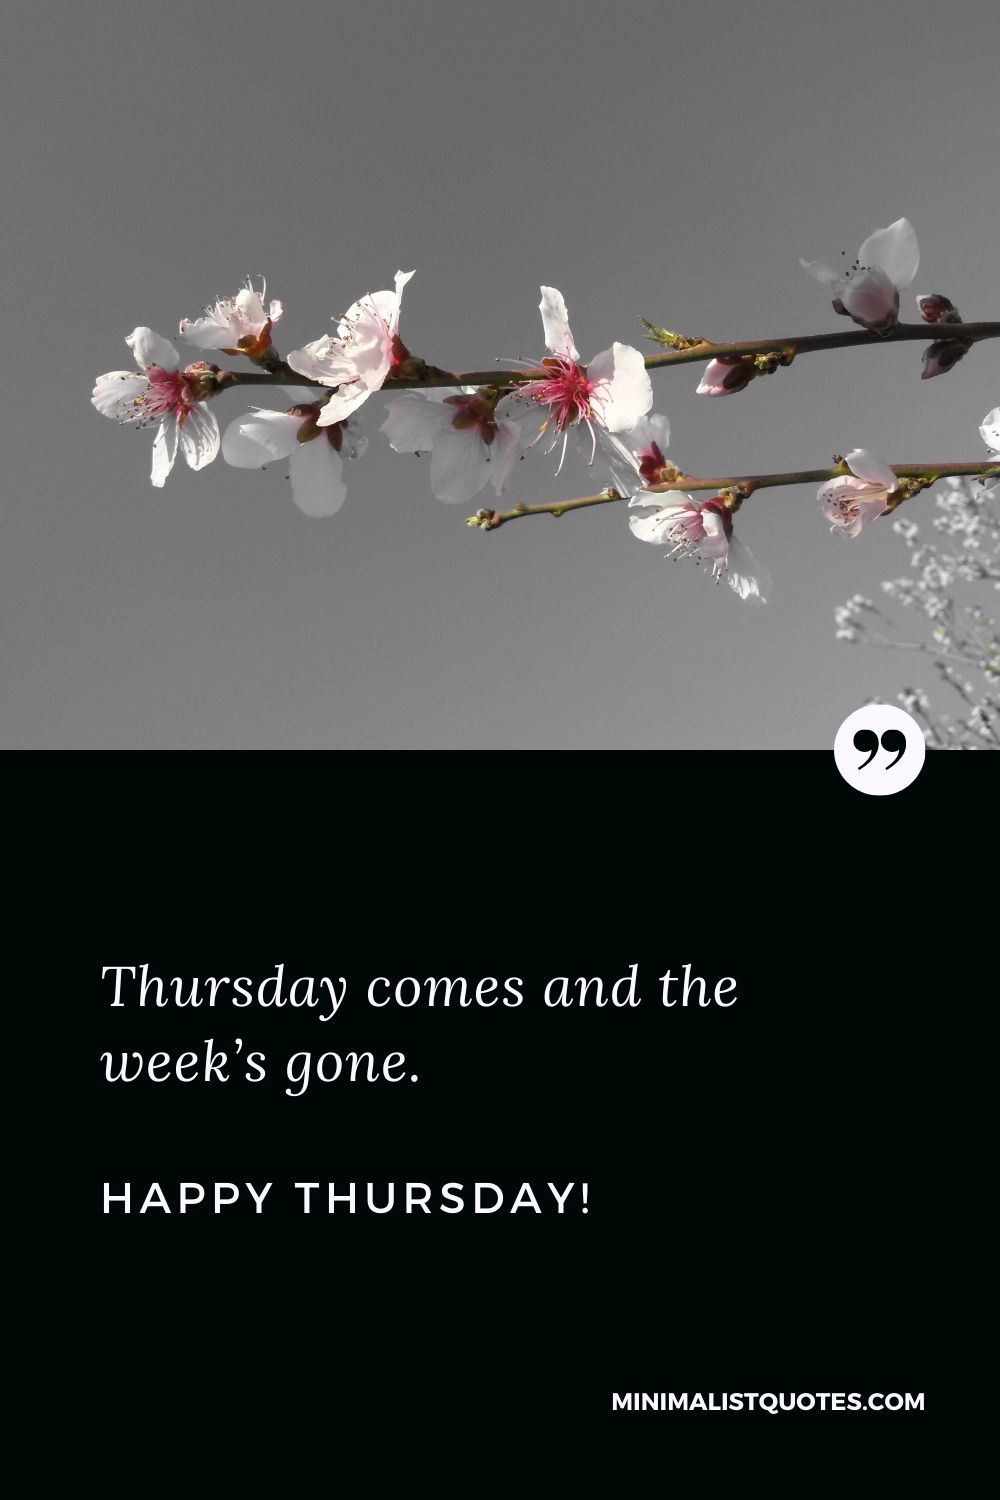 Thursday evening quotes: Thursday comes and the week's gone. Happy Thursday!